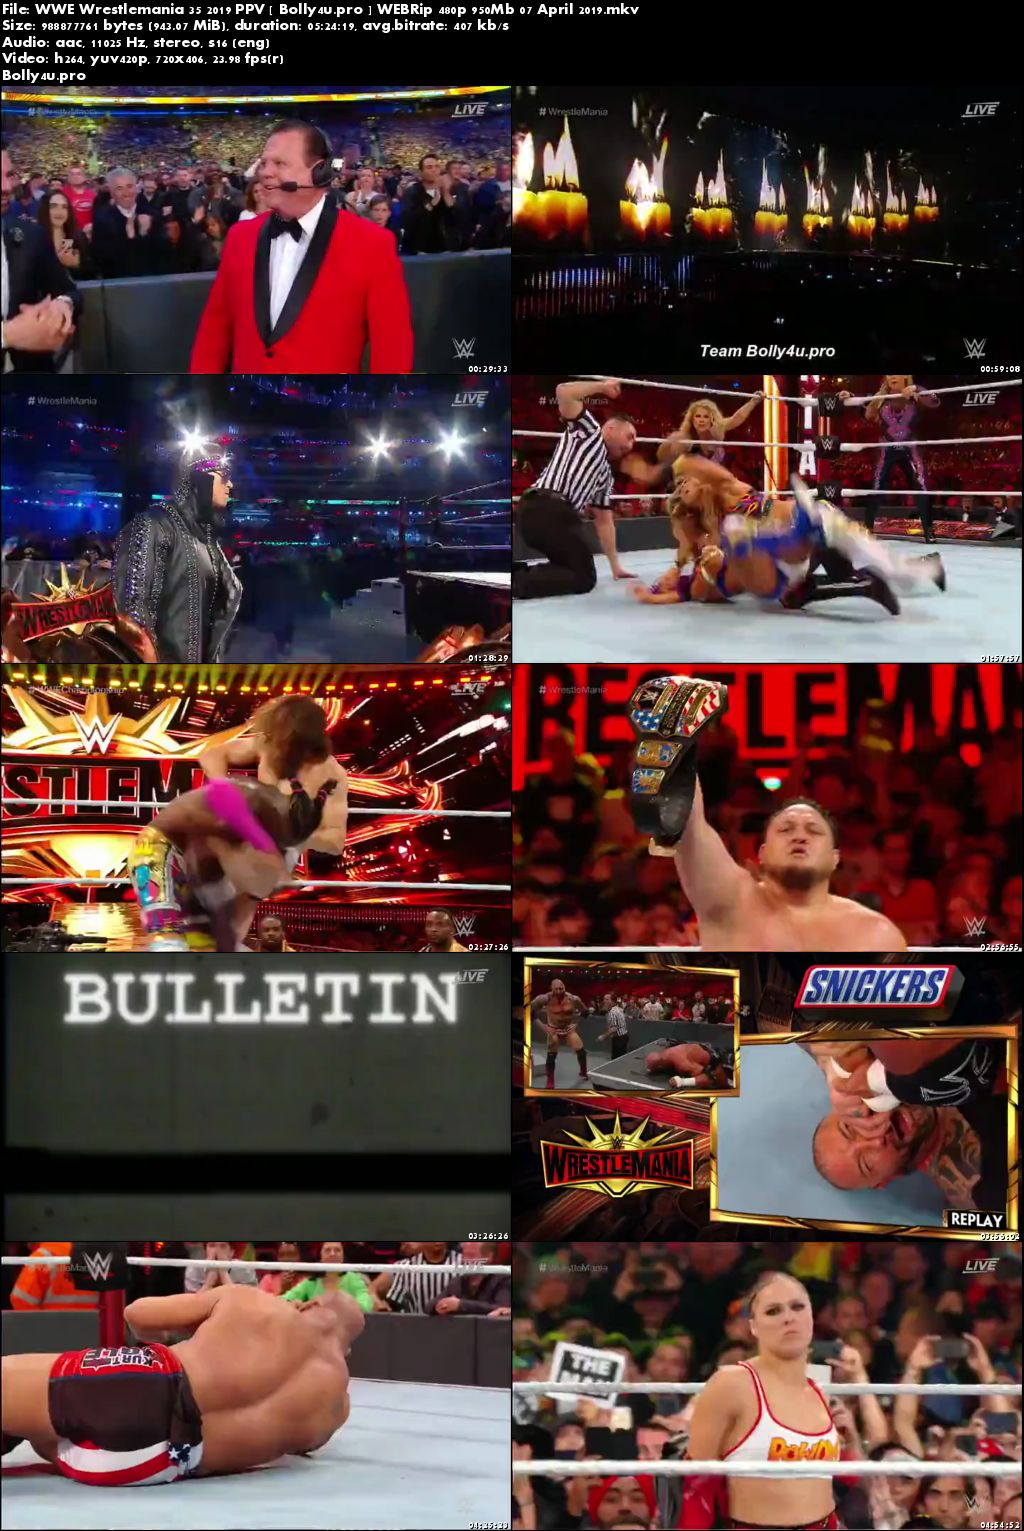 WWE Wrestlemania 35 2019 PPV WEBRip 480p 950Mb Full Show x264 Download